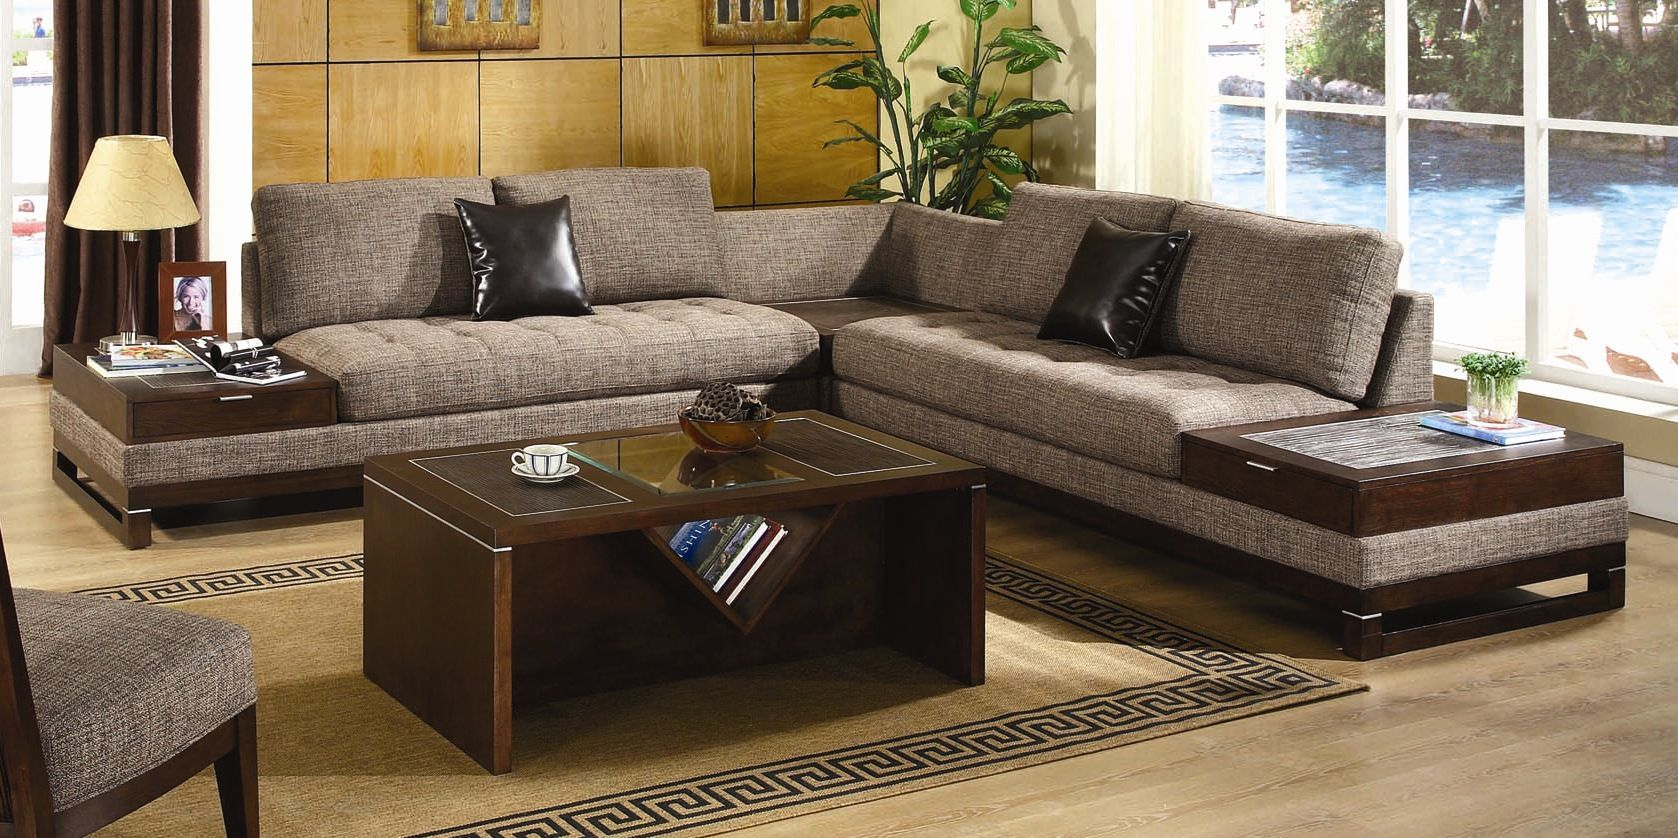 Living Room Furniture For Sale Cheap Apartment Living Room Ideas regarding Affordable Living Room Sets For Sale